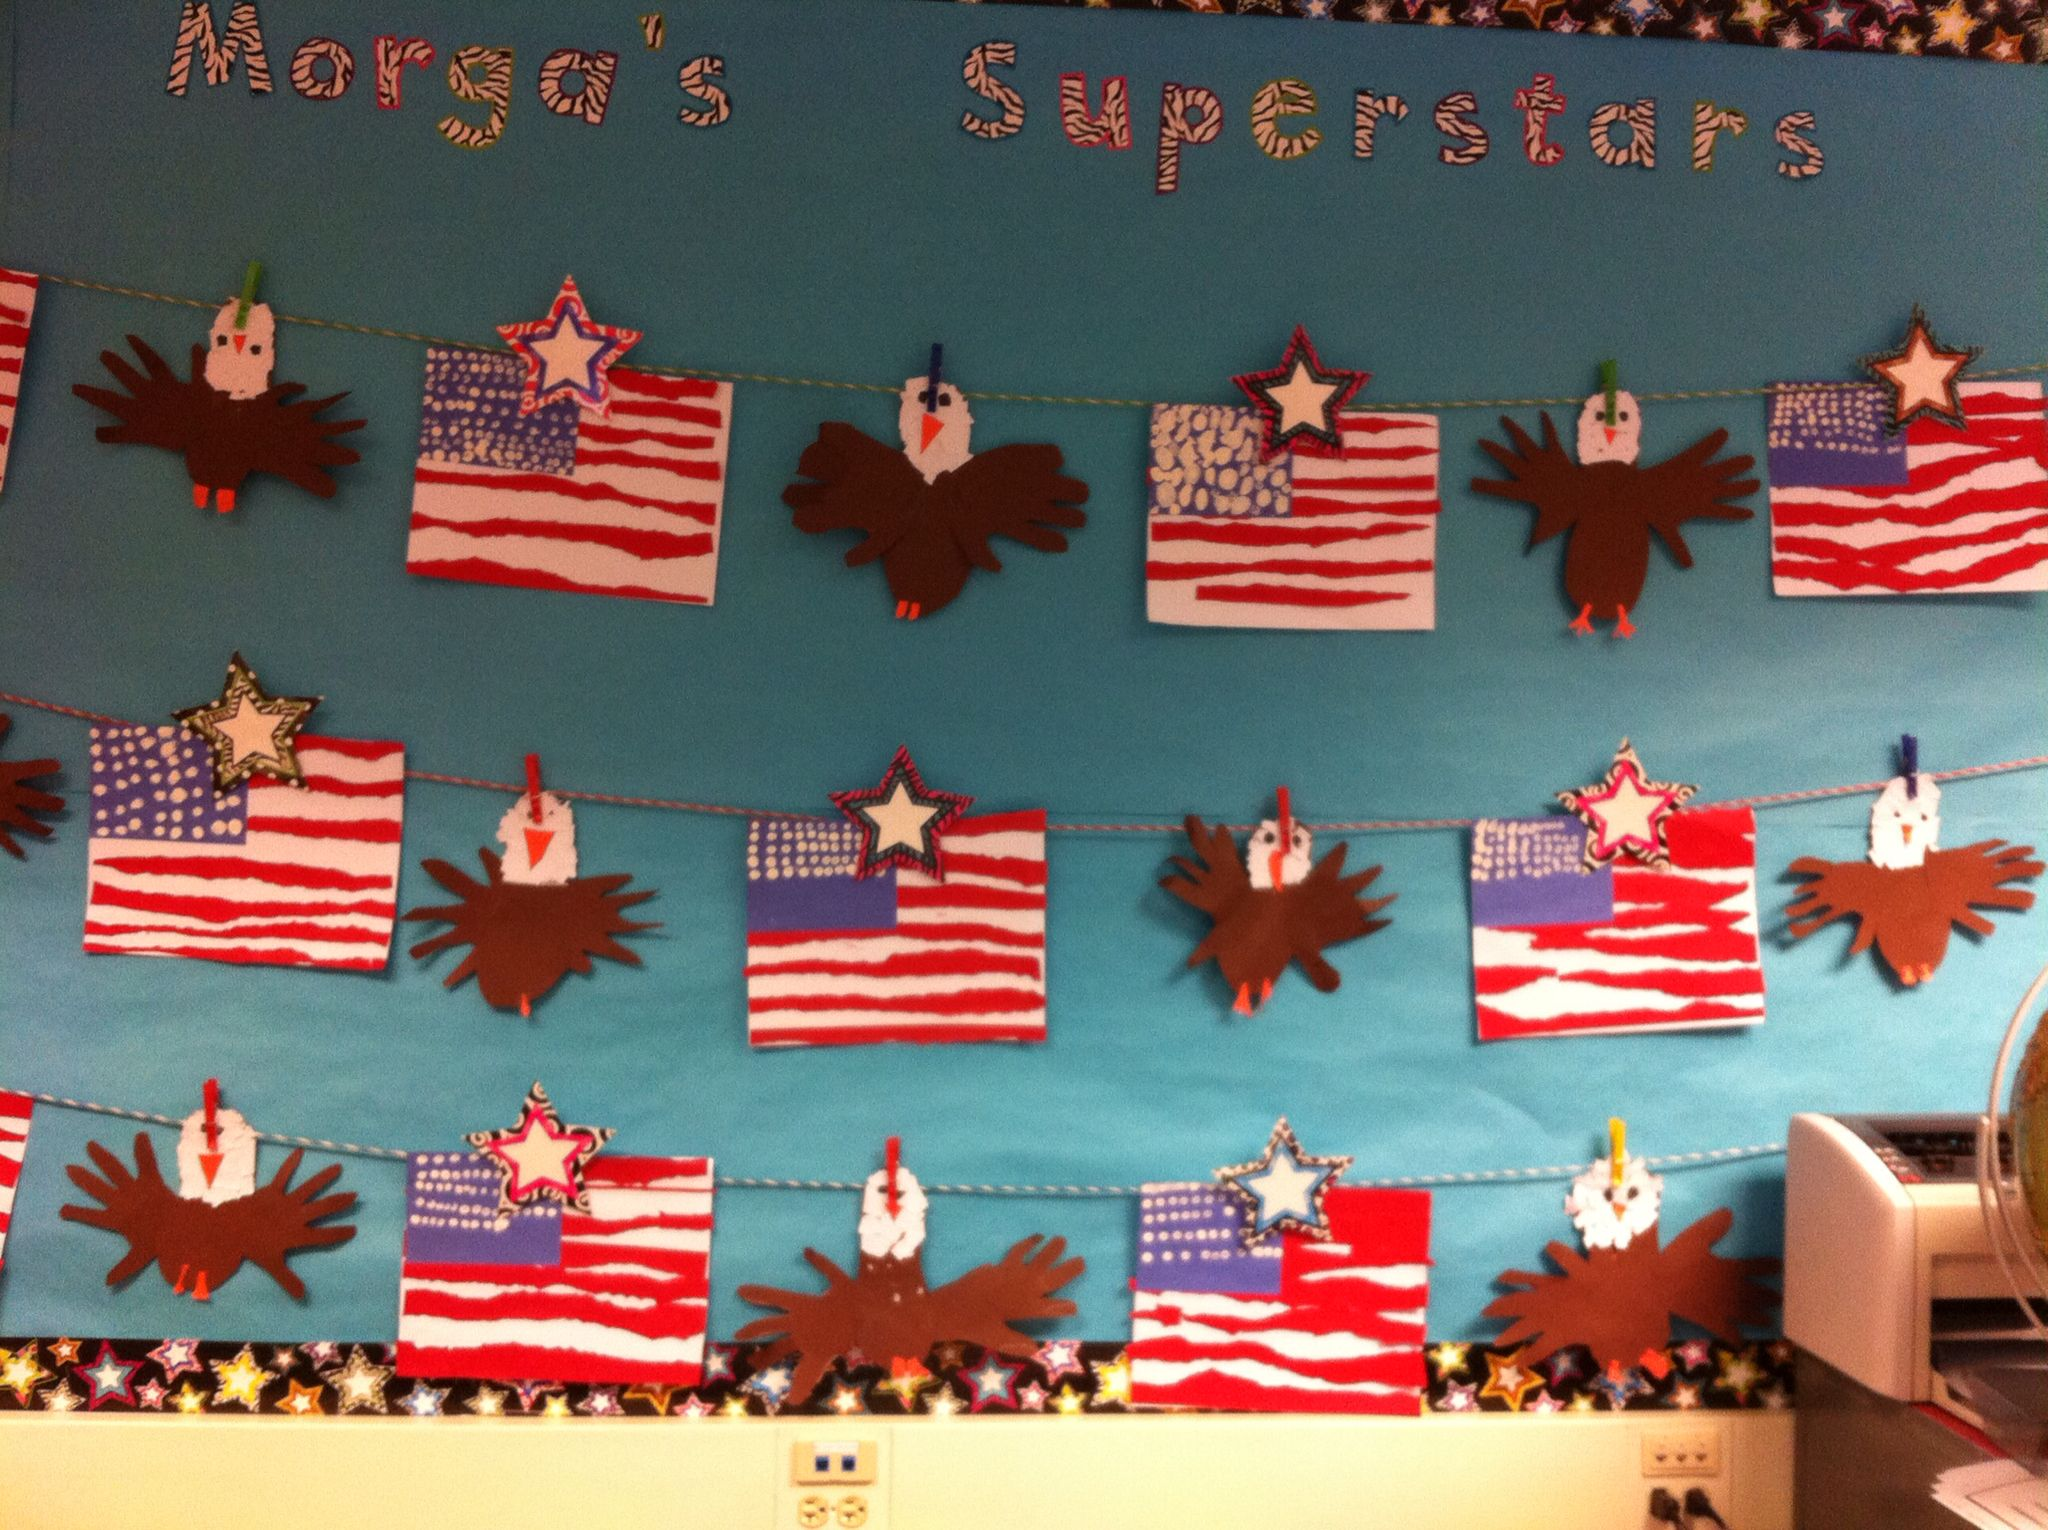 Torn Paper Art American Flags And Bald Eagles Made With